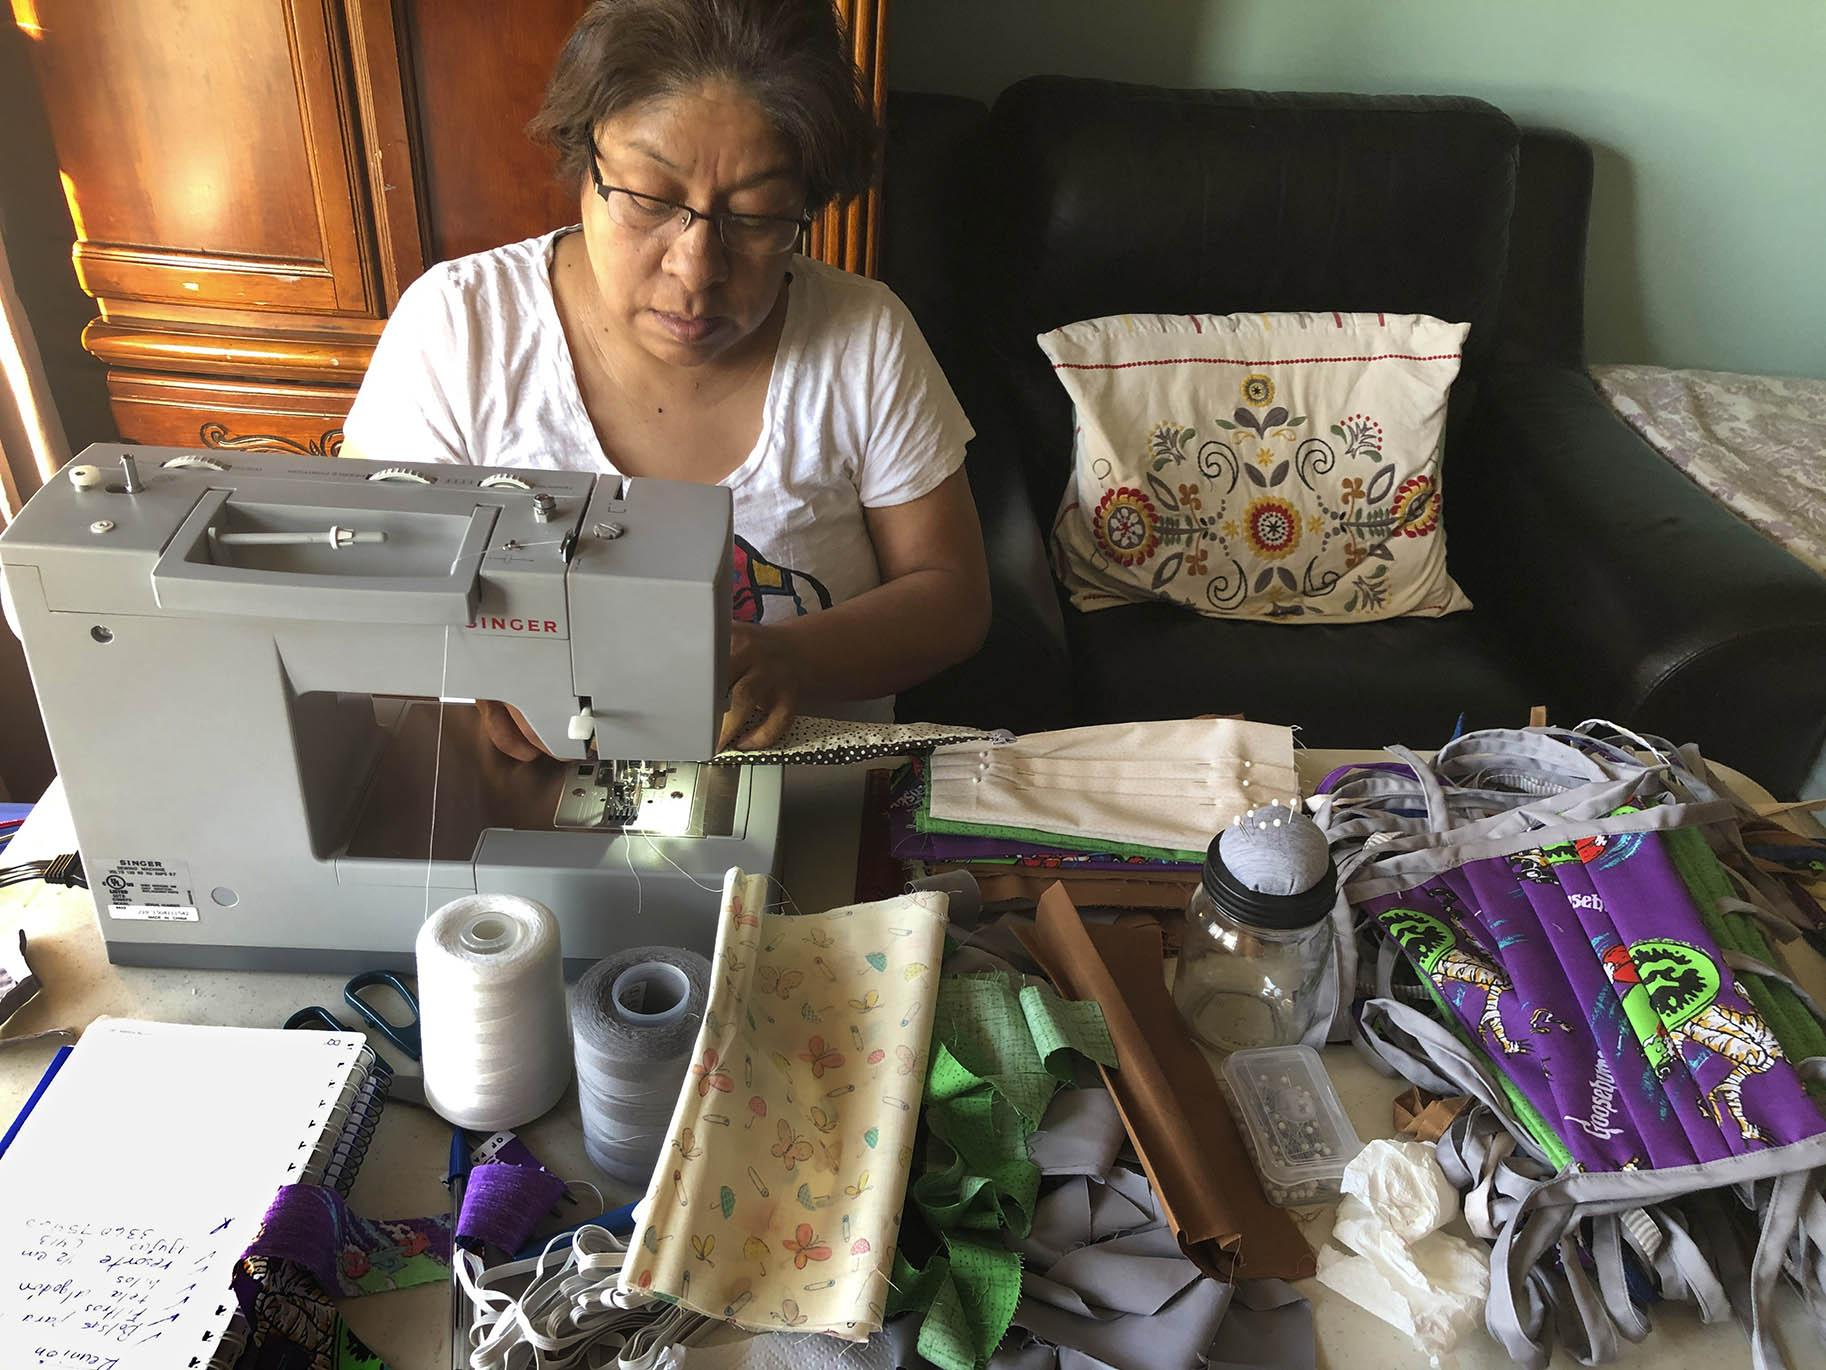 In this April 7, 2020, photo provided by Maribel Torres, Maribel Torres sews face masks masks to be used for protection against the coronavirus at her home in the Staten Island borough of New York. (Pablo Evangelista / Torres Family Photo via AP)